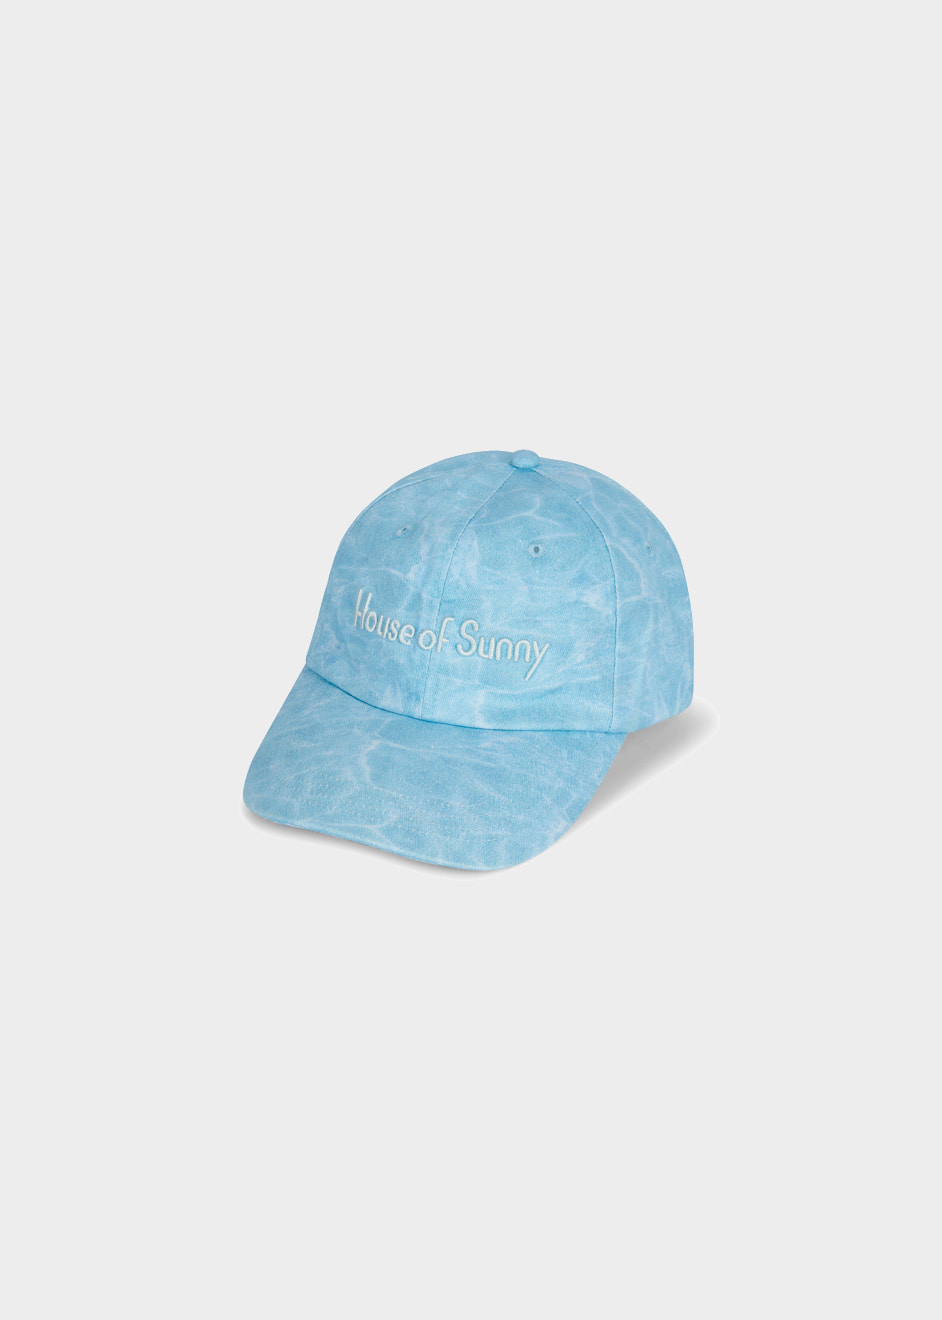 PURE SHORES CAP